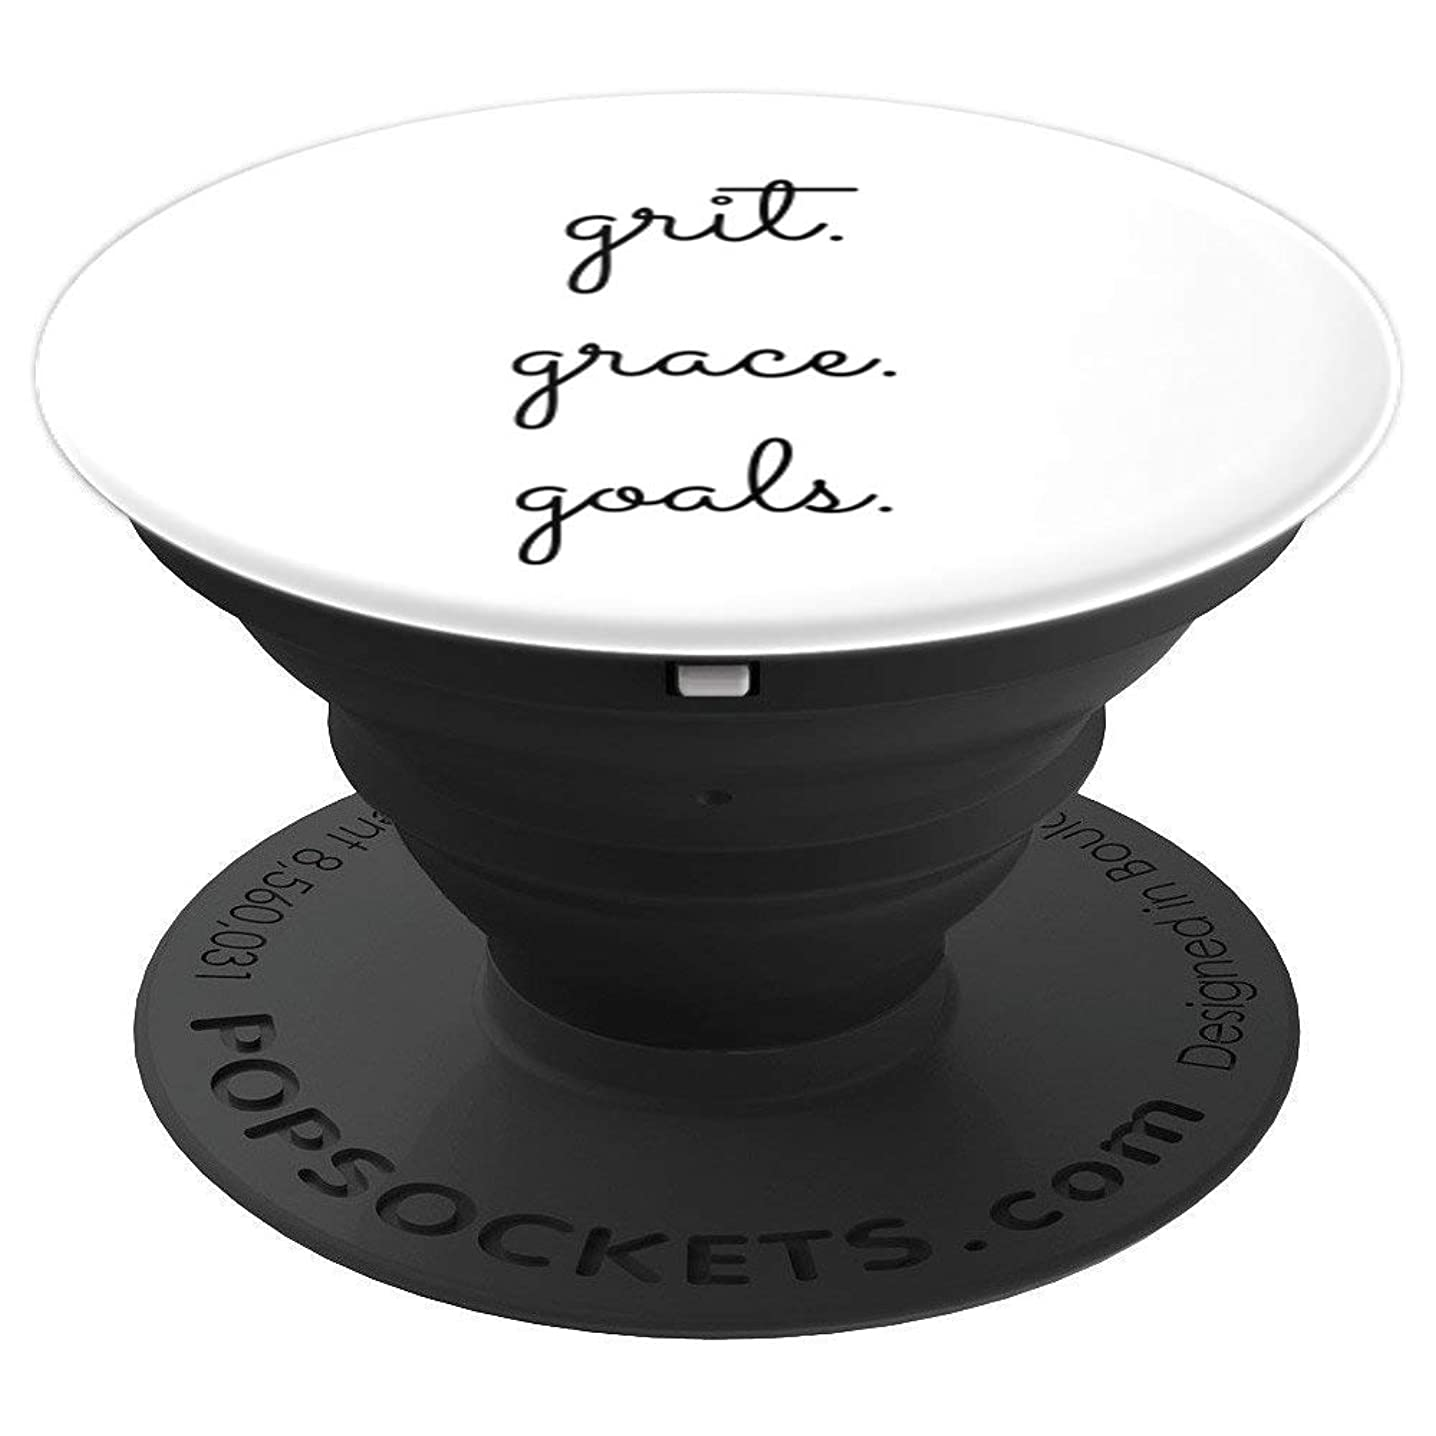 Cute Grit Grace Goals Motivation Inspiration - PopSockets Grip and Stand for Phones and Tablets